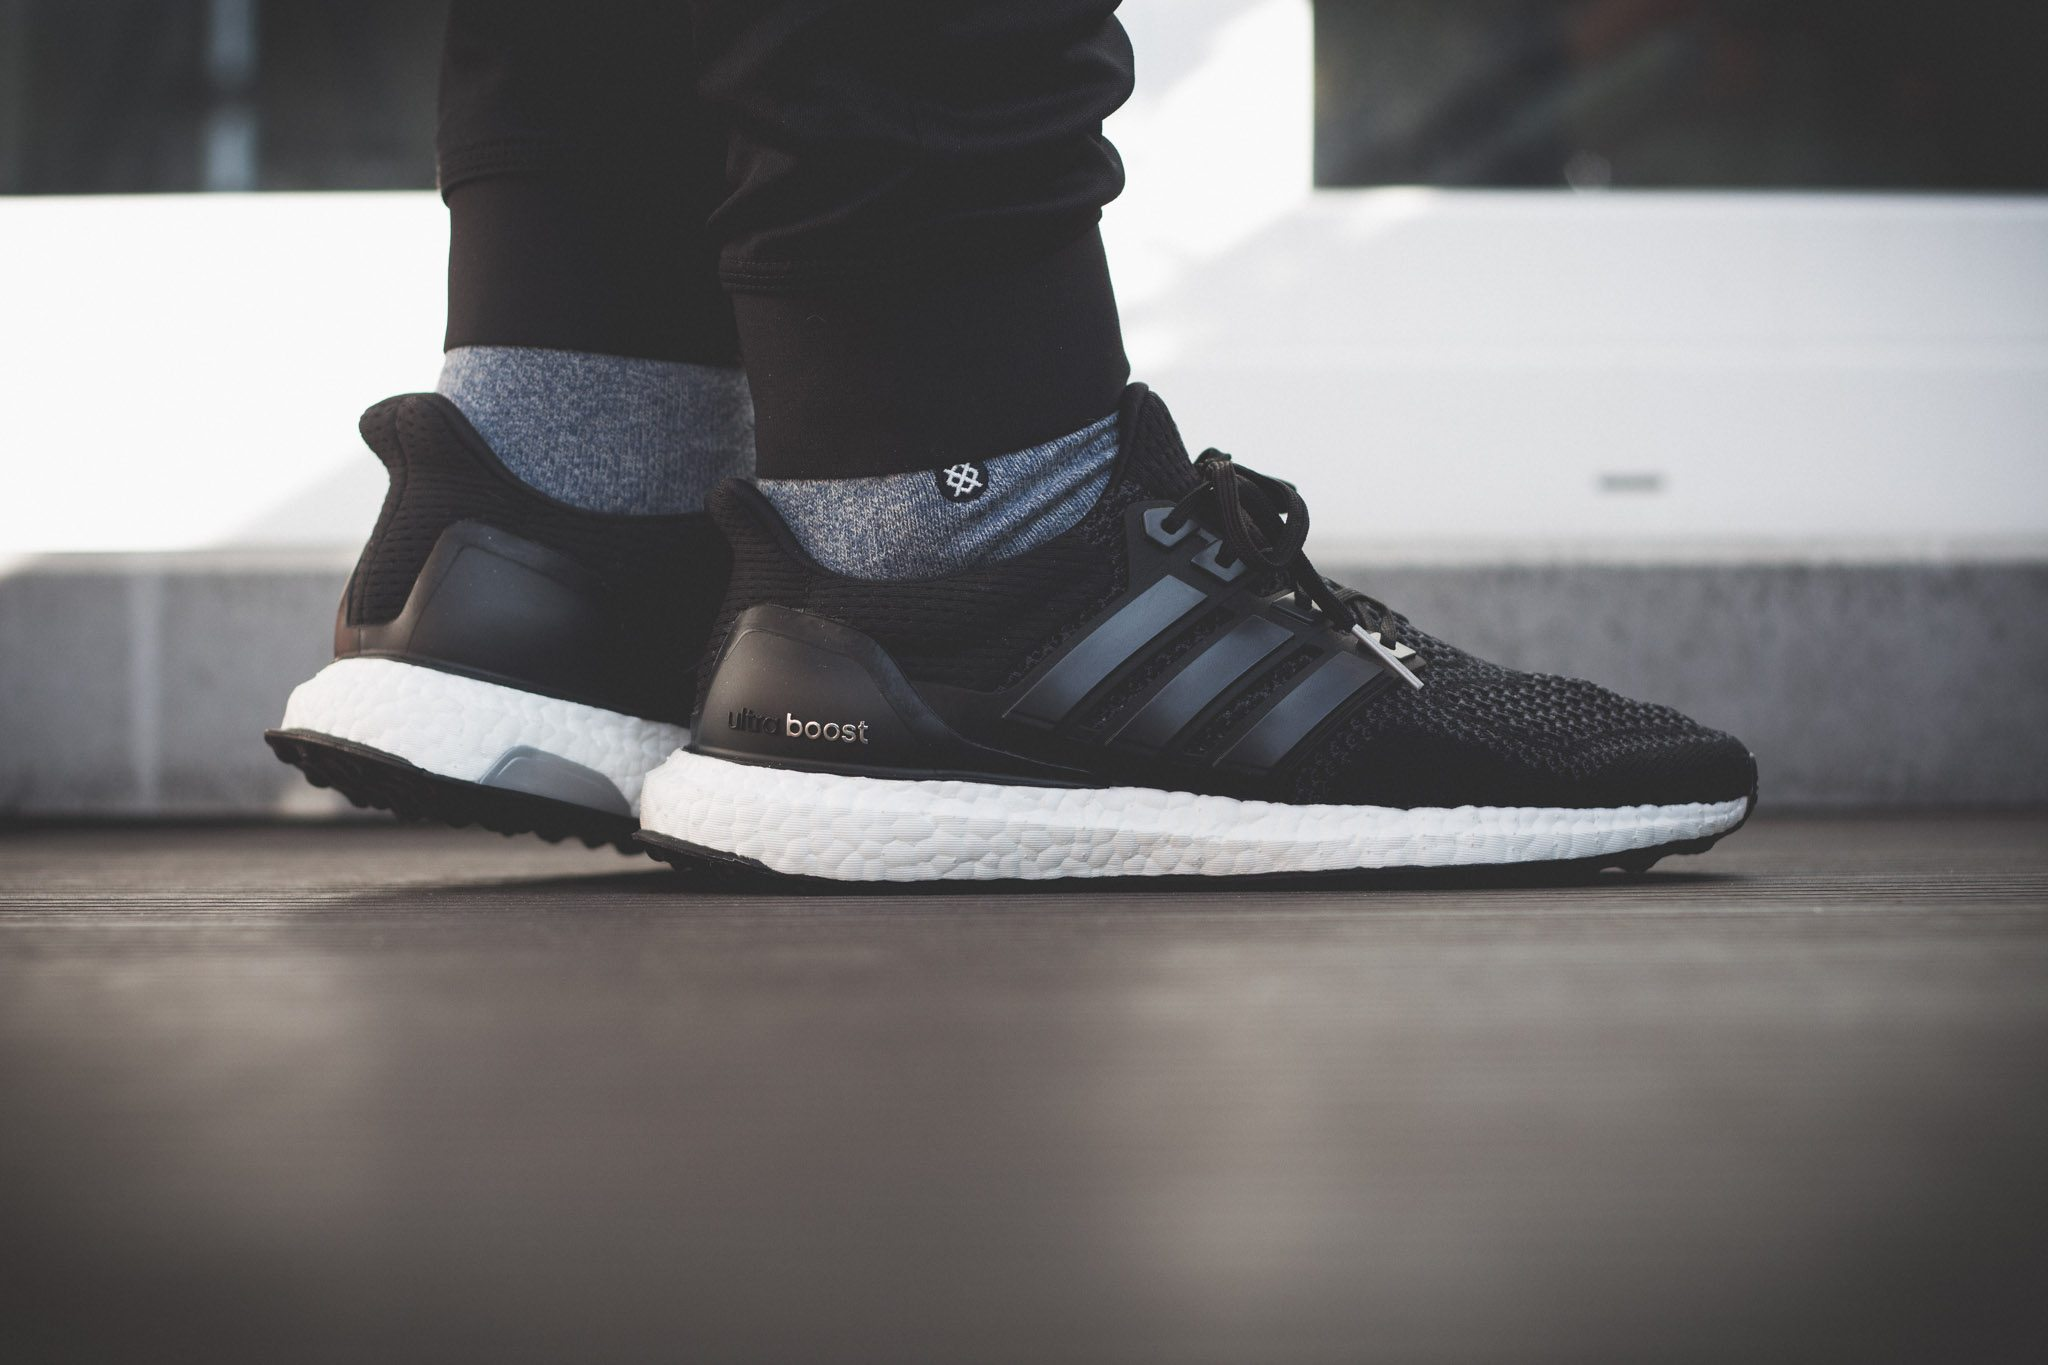 ᐅ Adidas Ultra Boost Black White Review Snkr